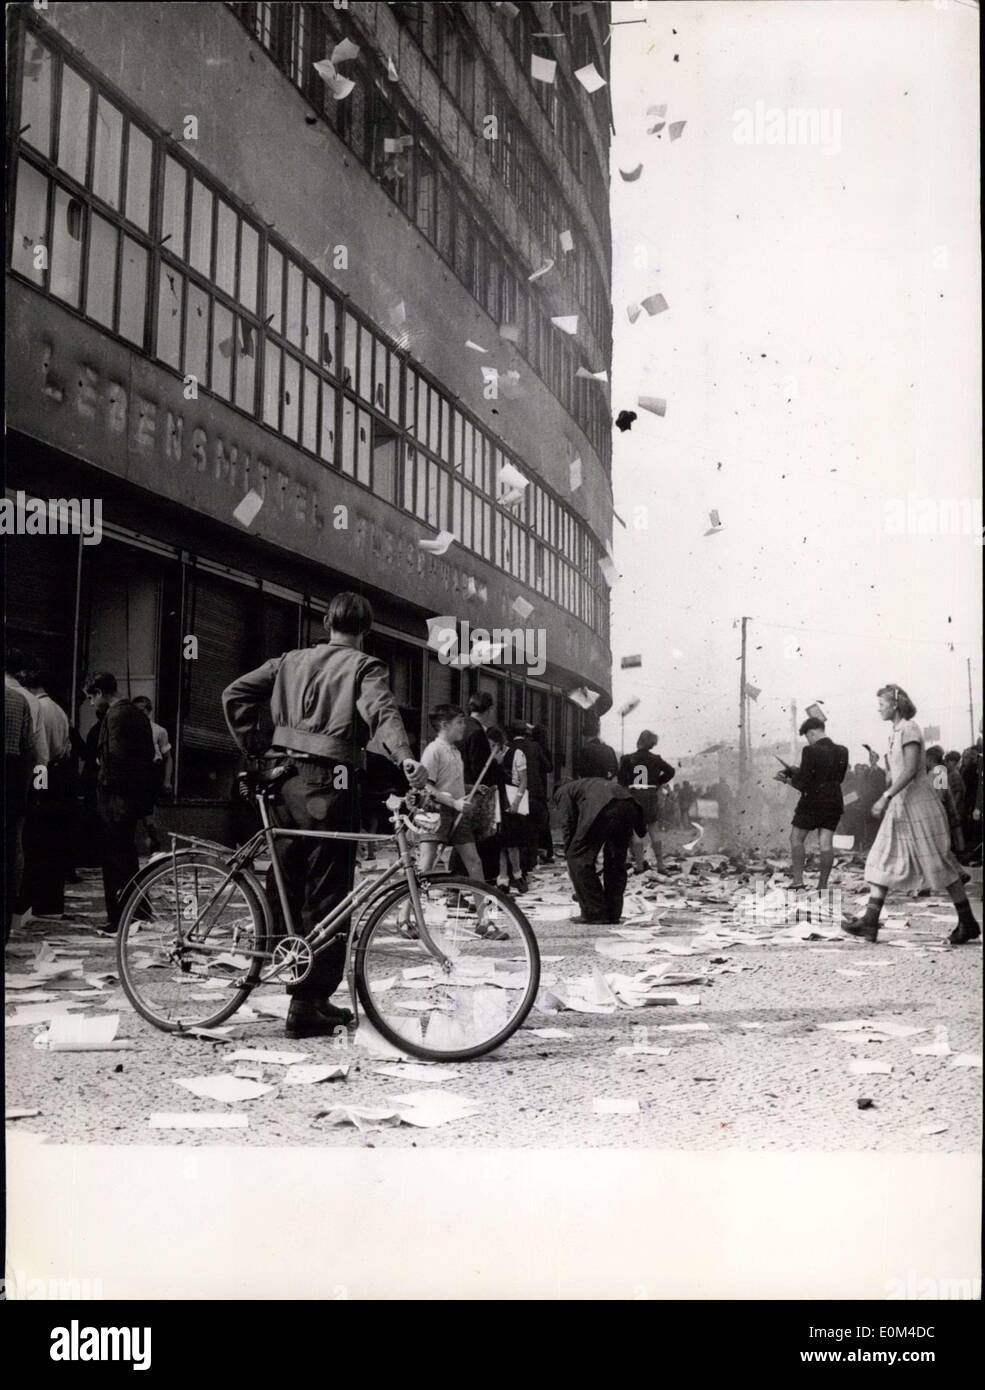 Jun. 18, 1953 - Ho-Building occupied by striking workers: In a broadcast aired last night, the Soviet-controlled East Berlin broadcasting station reported that ''Imperialistic gangsters and their East Berlin followers have 'Virtually' destroyed the HO-building, one of the few big Soviet-controlled shopping centers. The crowd stormed the building, penetrated, bills and papers right thru the windows into the sidewalk and on to the street while raging youngsters burned the ''rest of the HO-red-tape''. After the building was burned - Stock Image